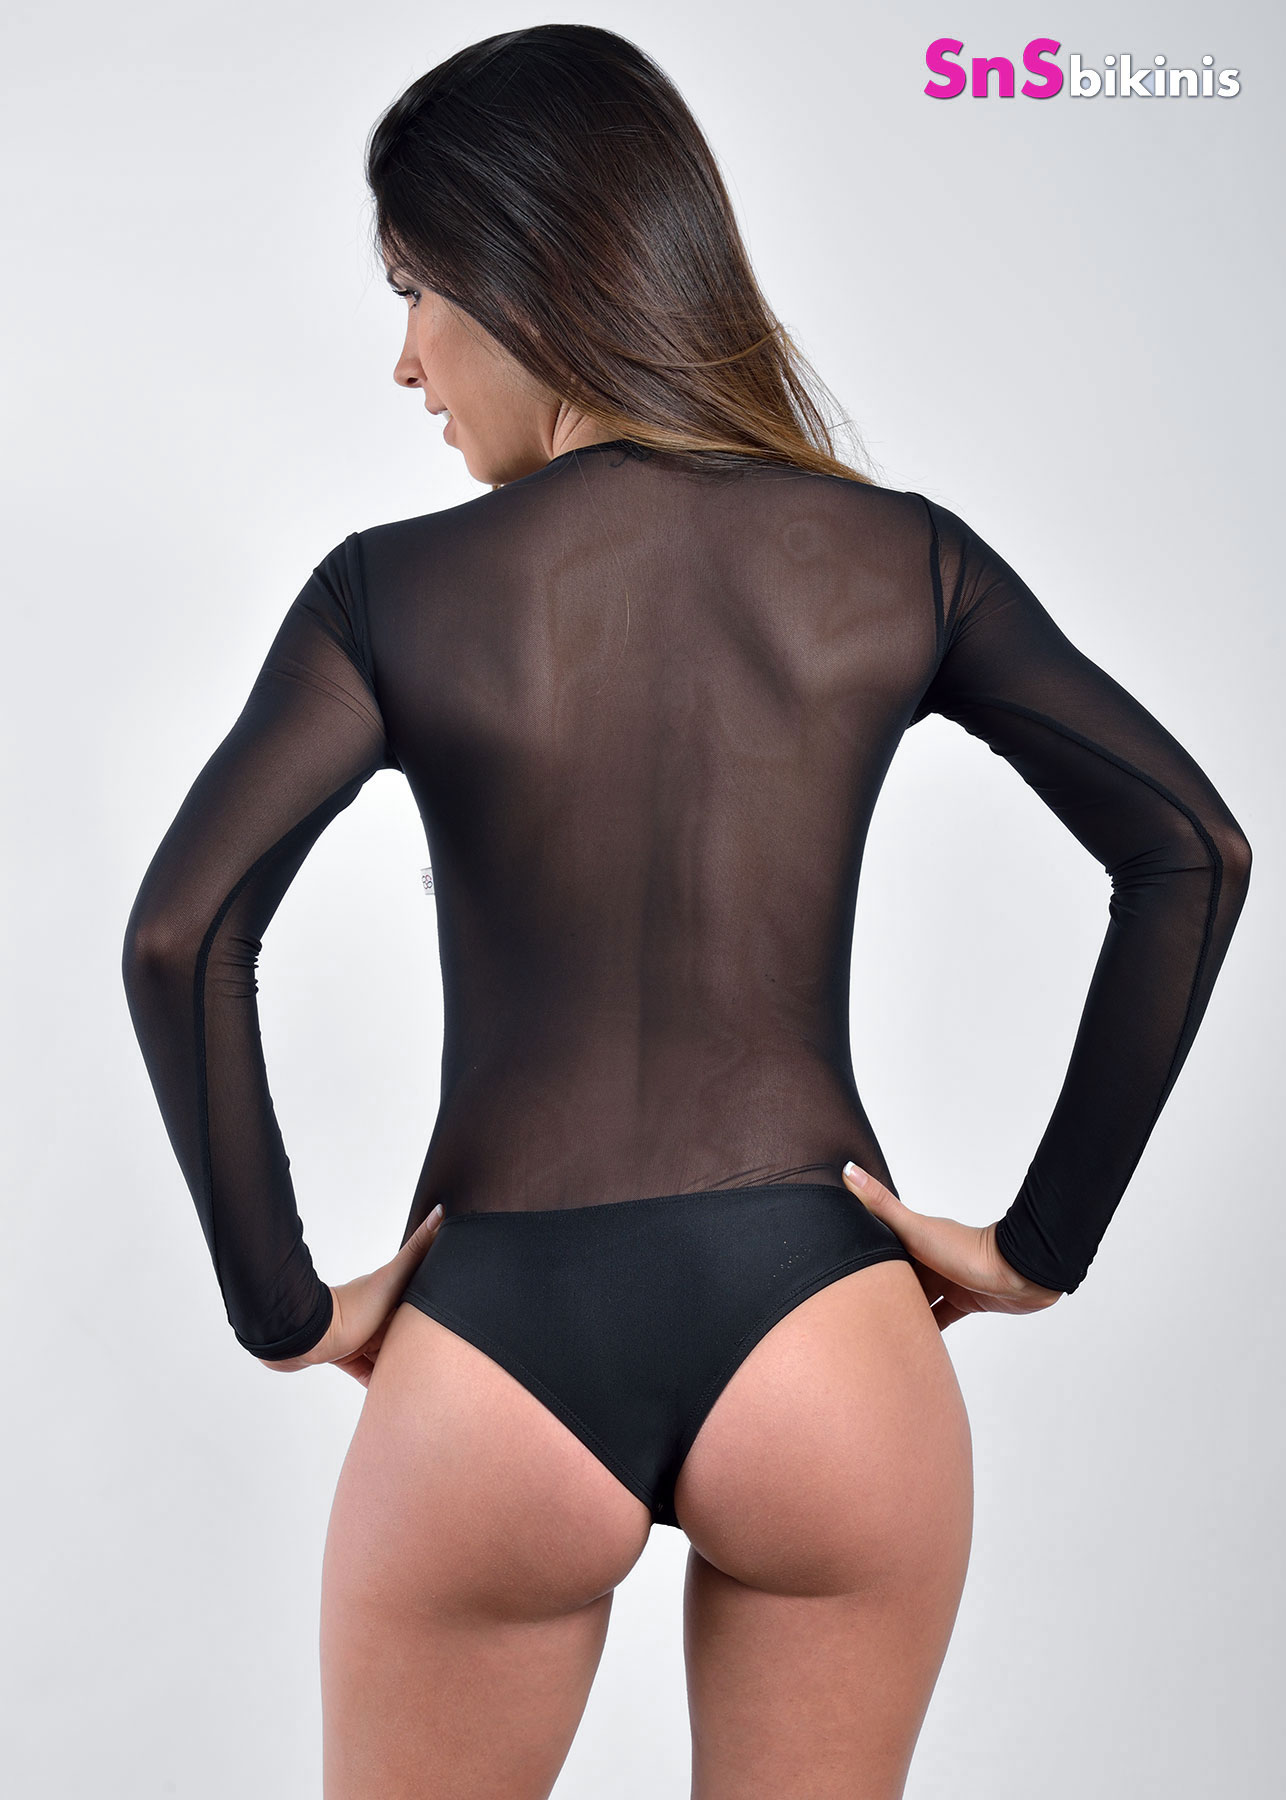 Sirena Hot Sheer Bodysuit Ward004cc 66 00